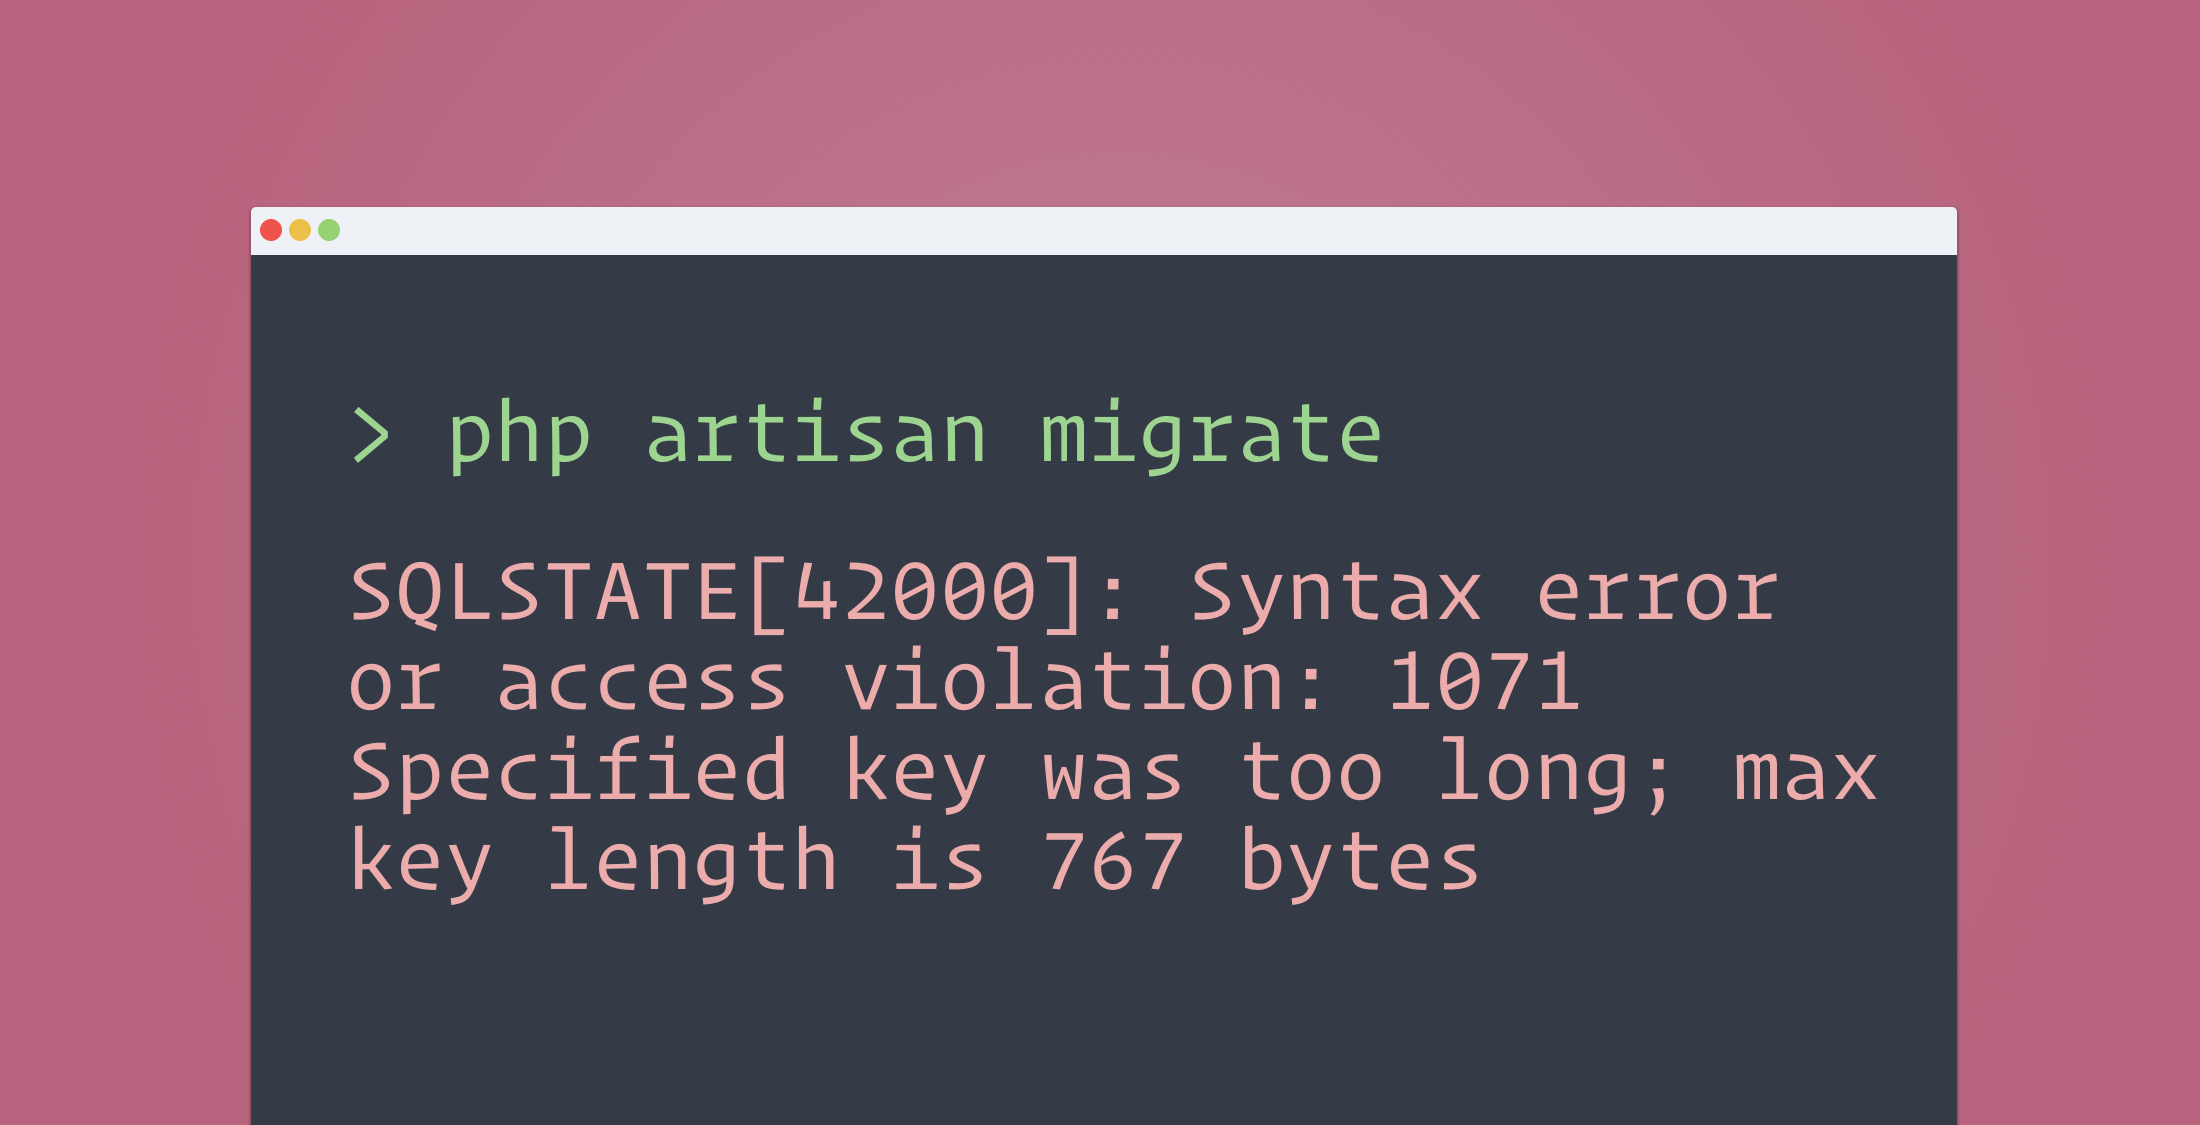 Laravel: Specified key was too long error on migration